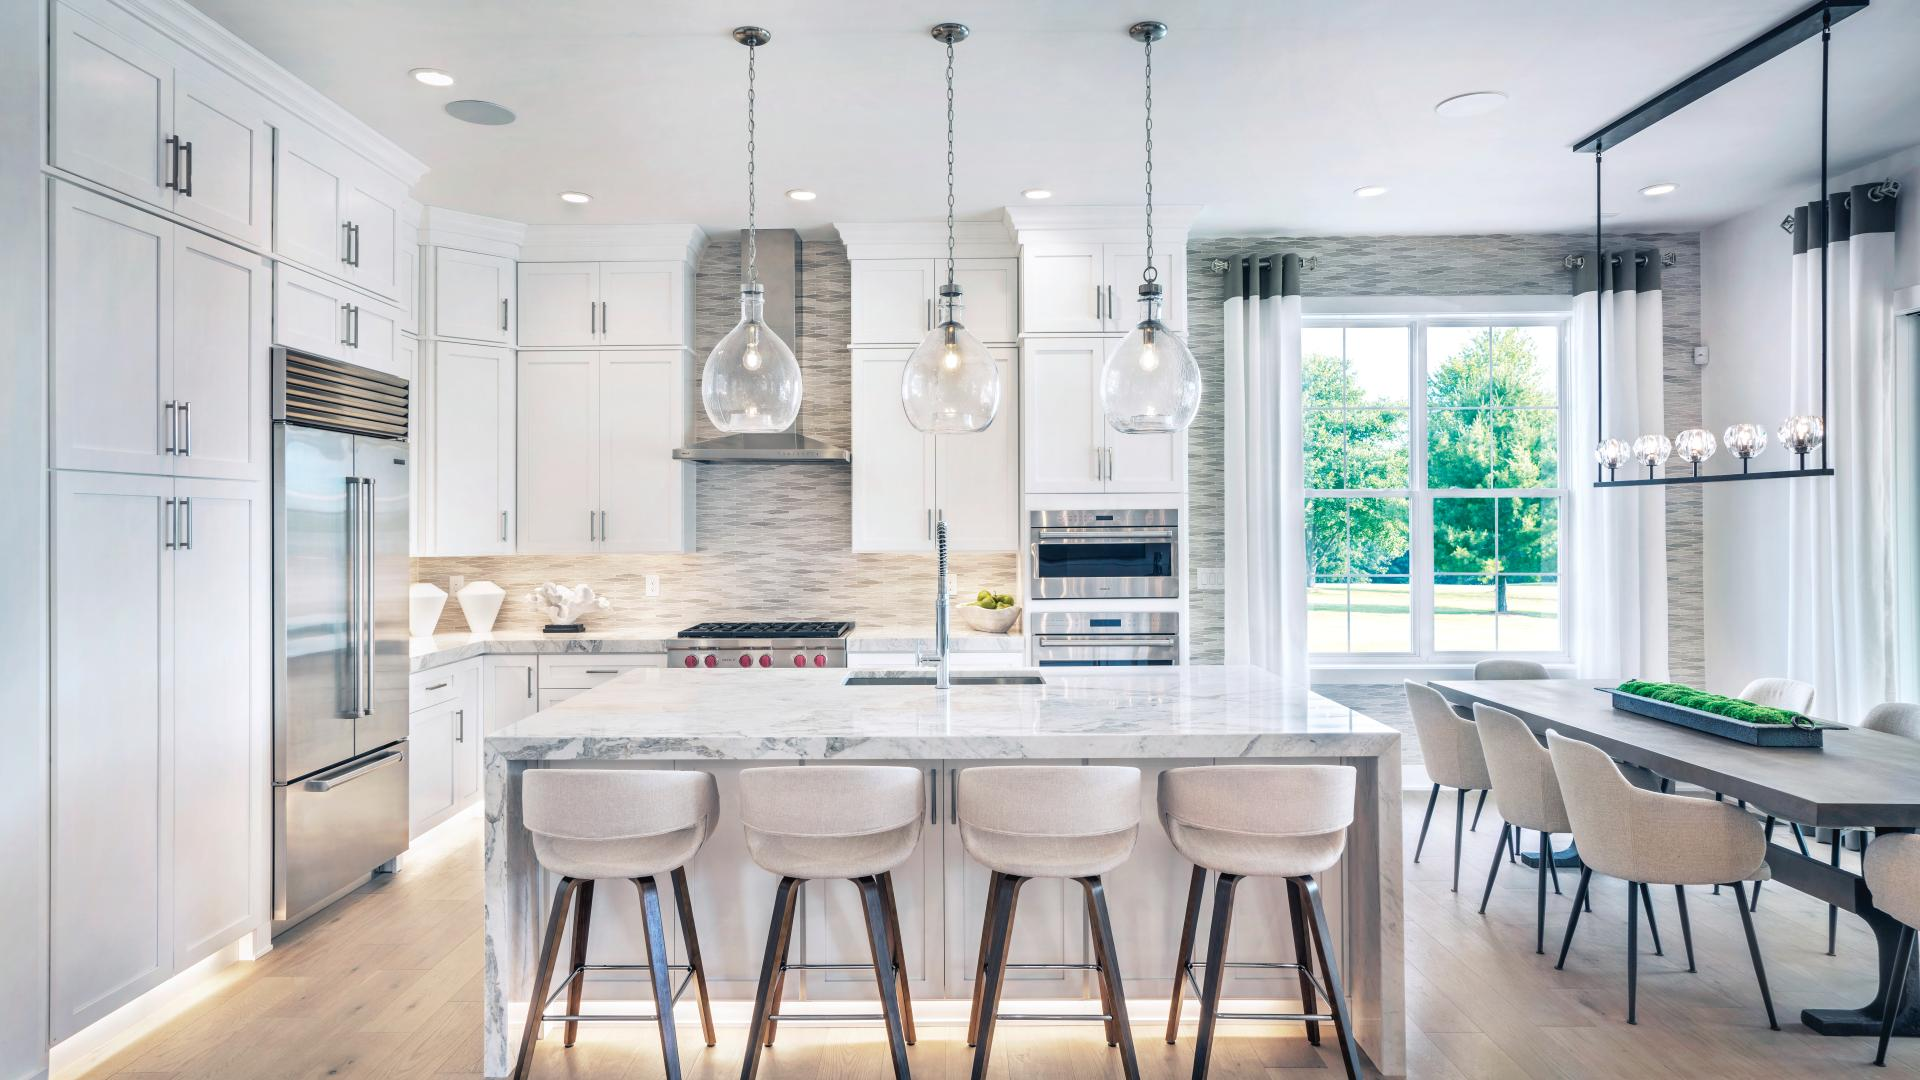 Graphic depiction: Kitchens with large center islands perfect for entertaining